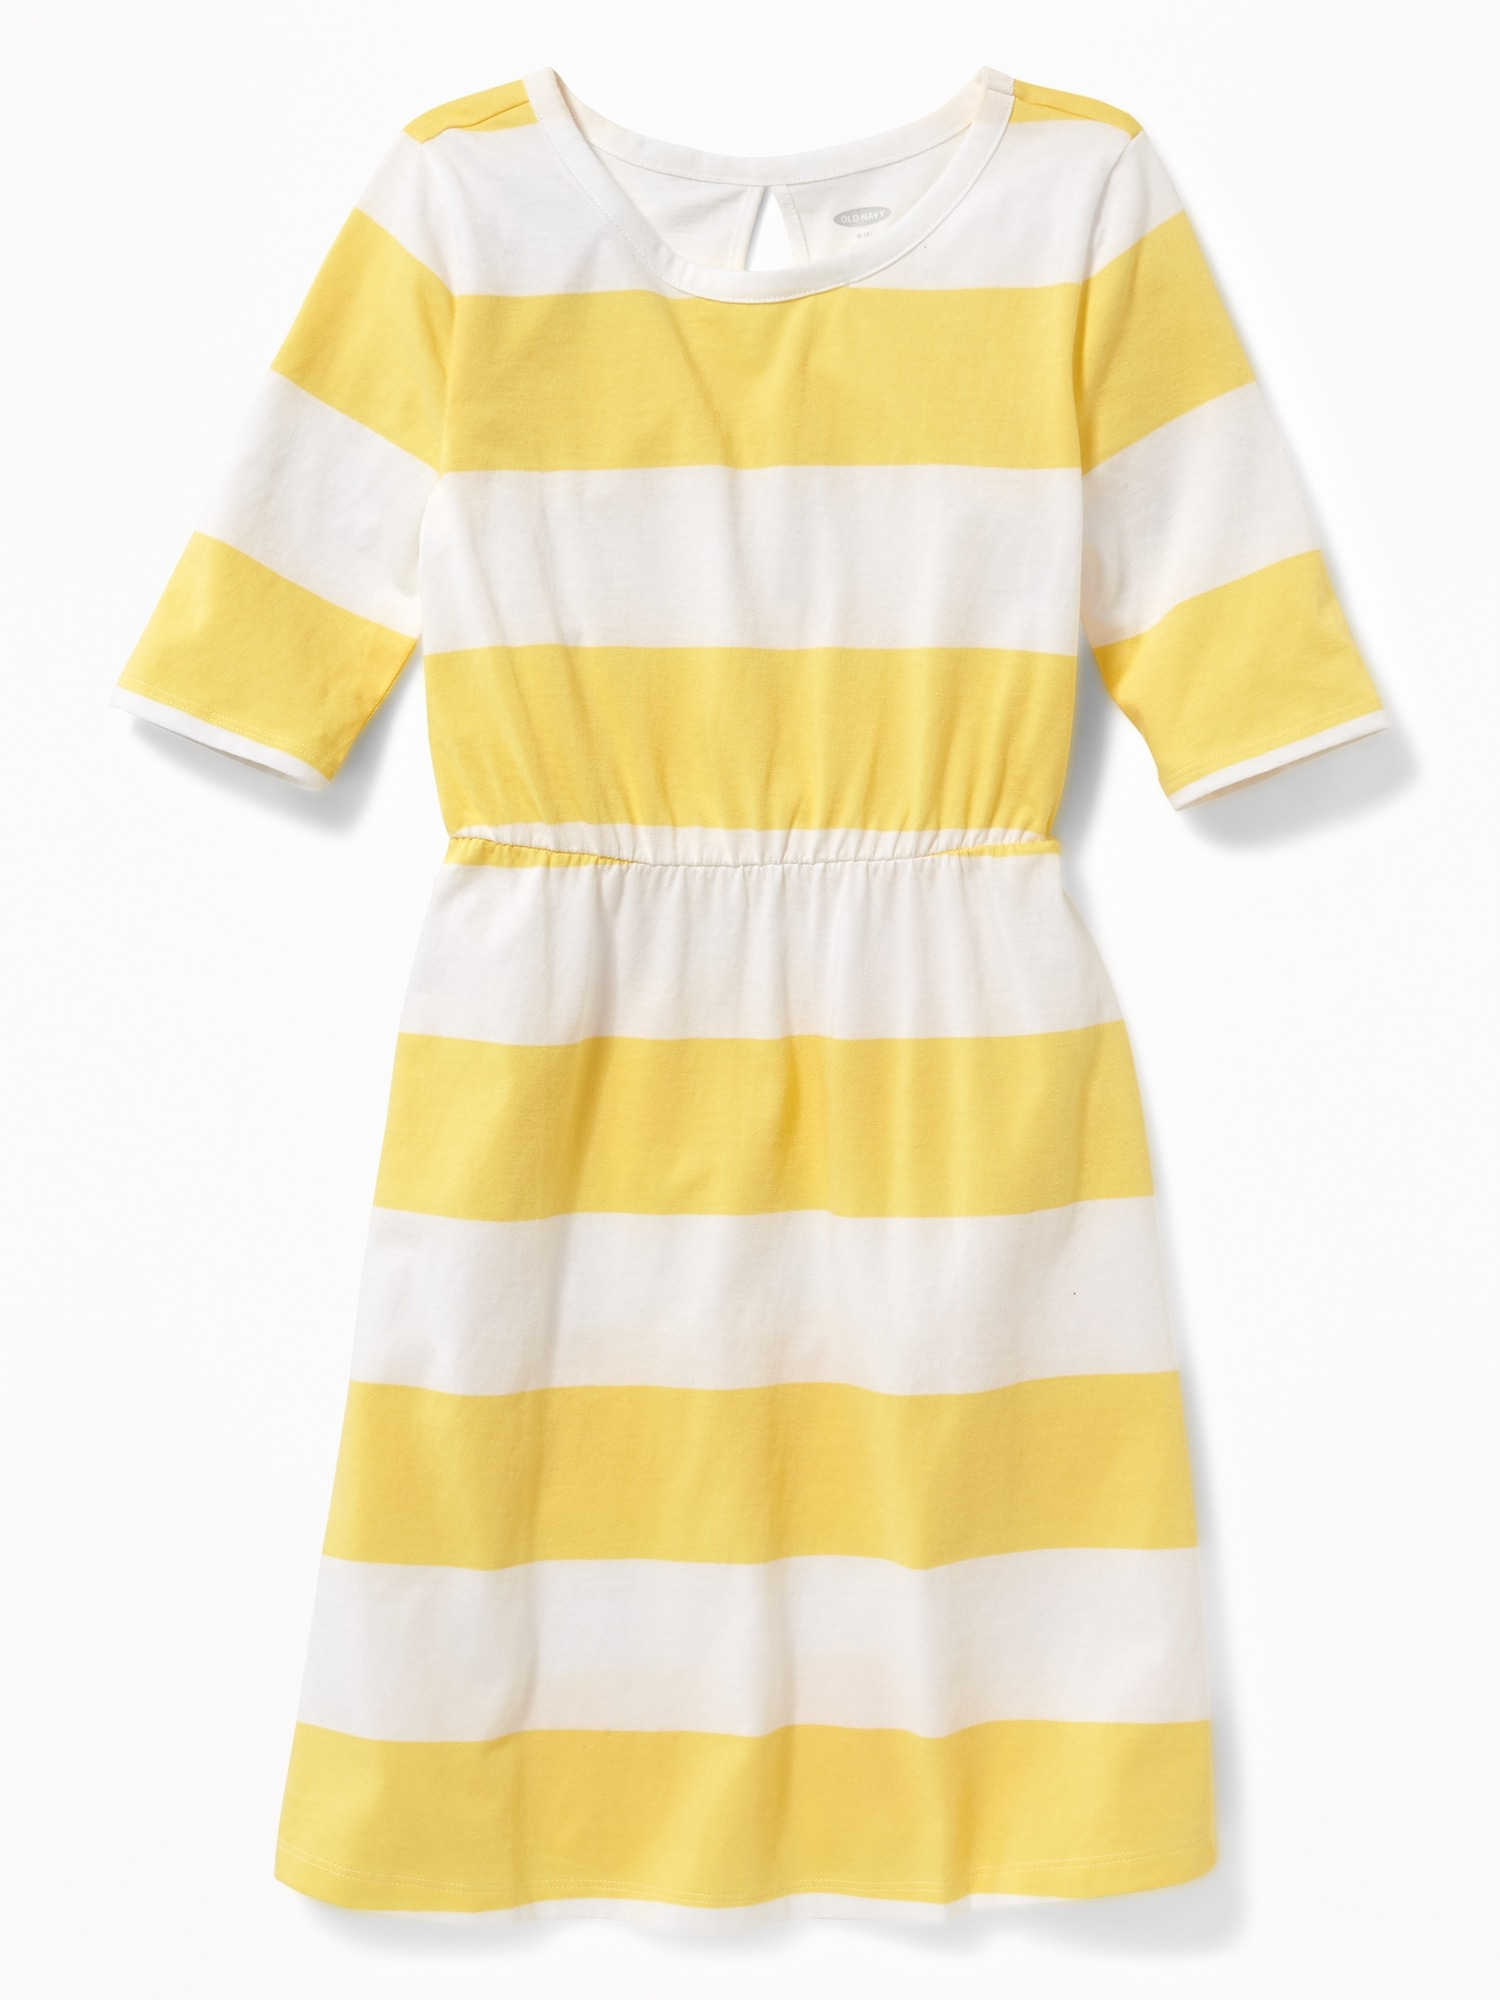 3ae2e23783b79 Printed Jersey Fit   Flare Dress for Girls